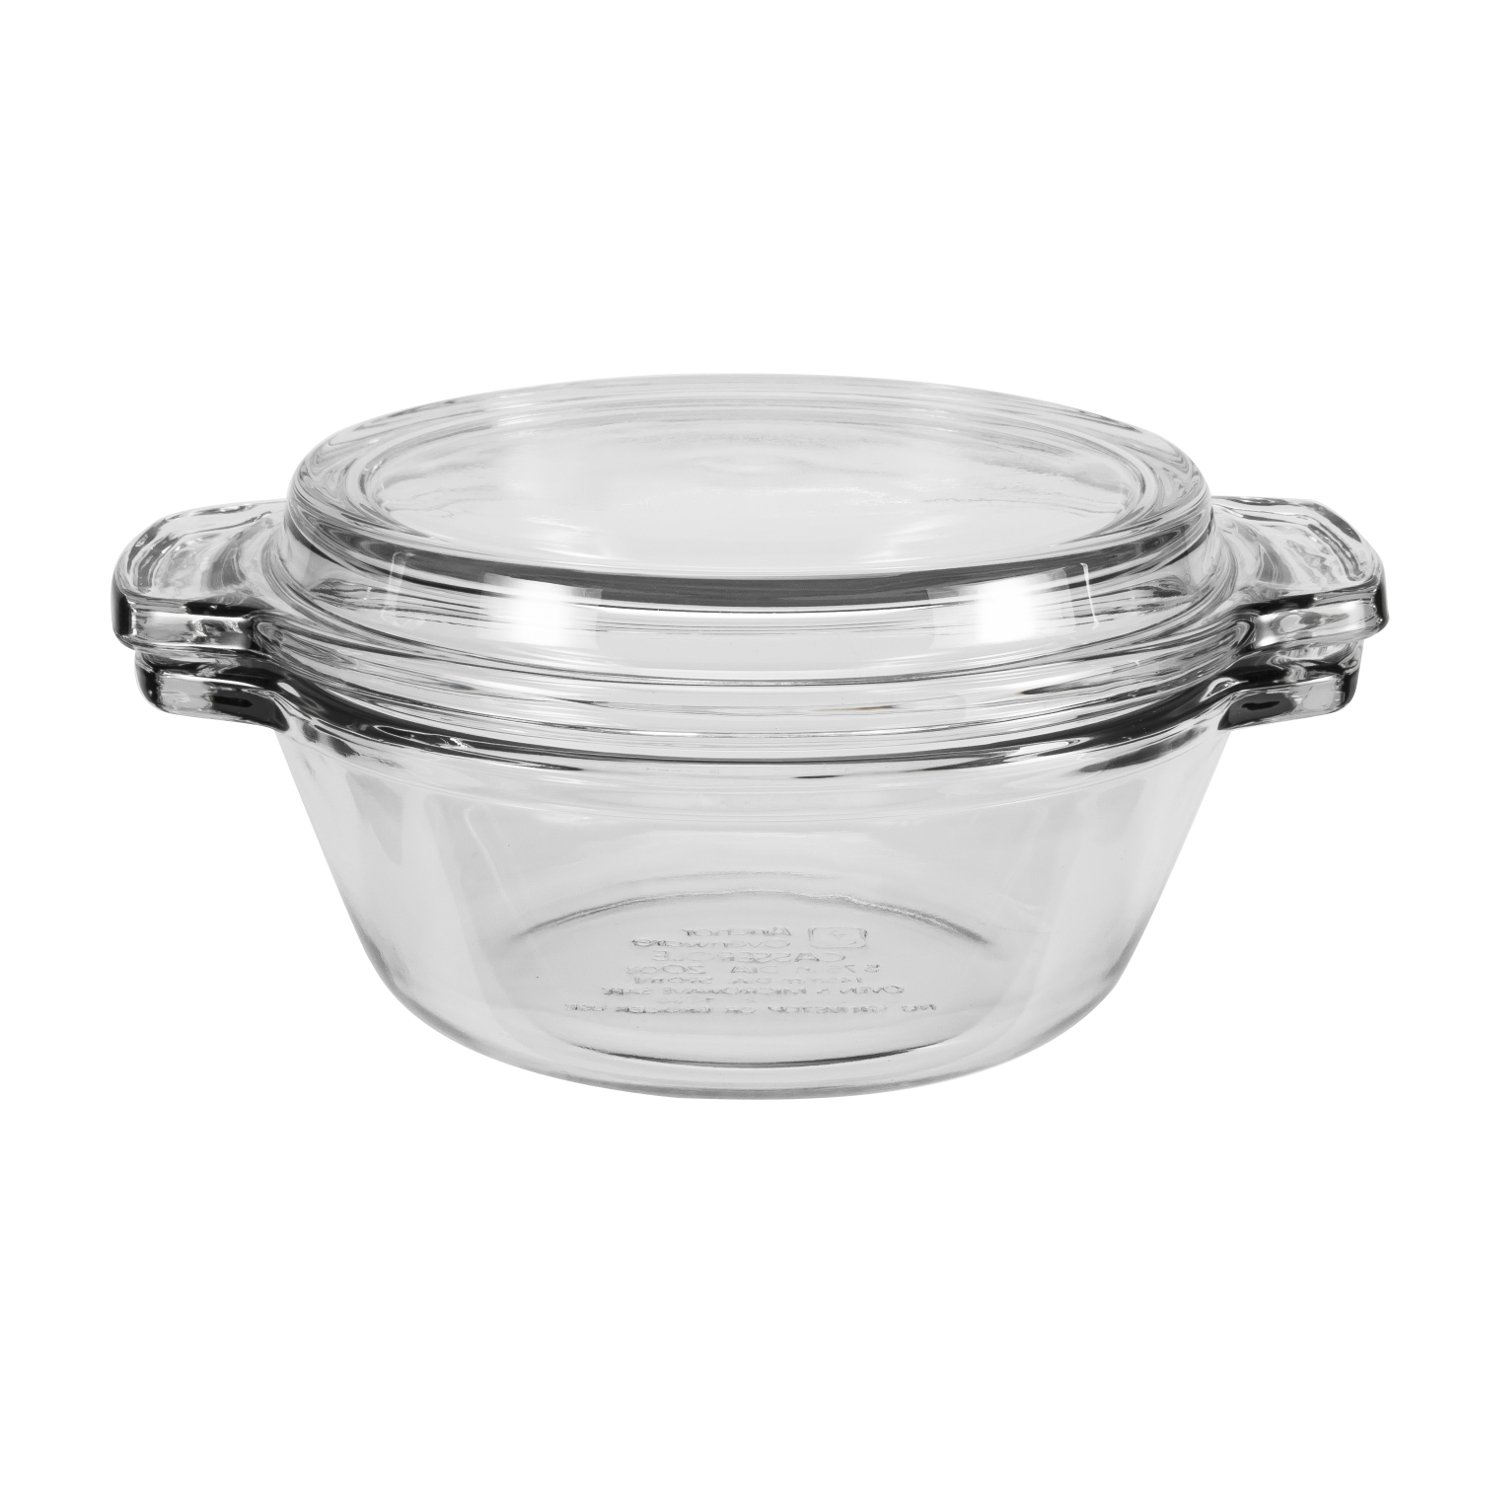 Anchor Hocking Oven Basics Glass 20 Ounce Casserole Dish